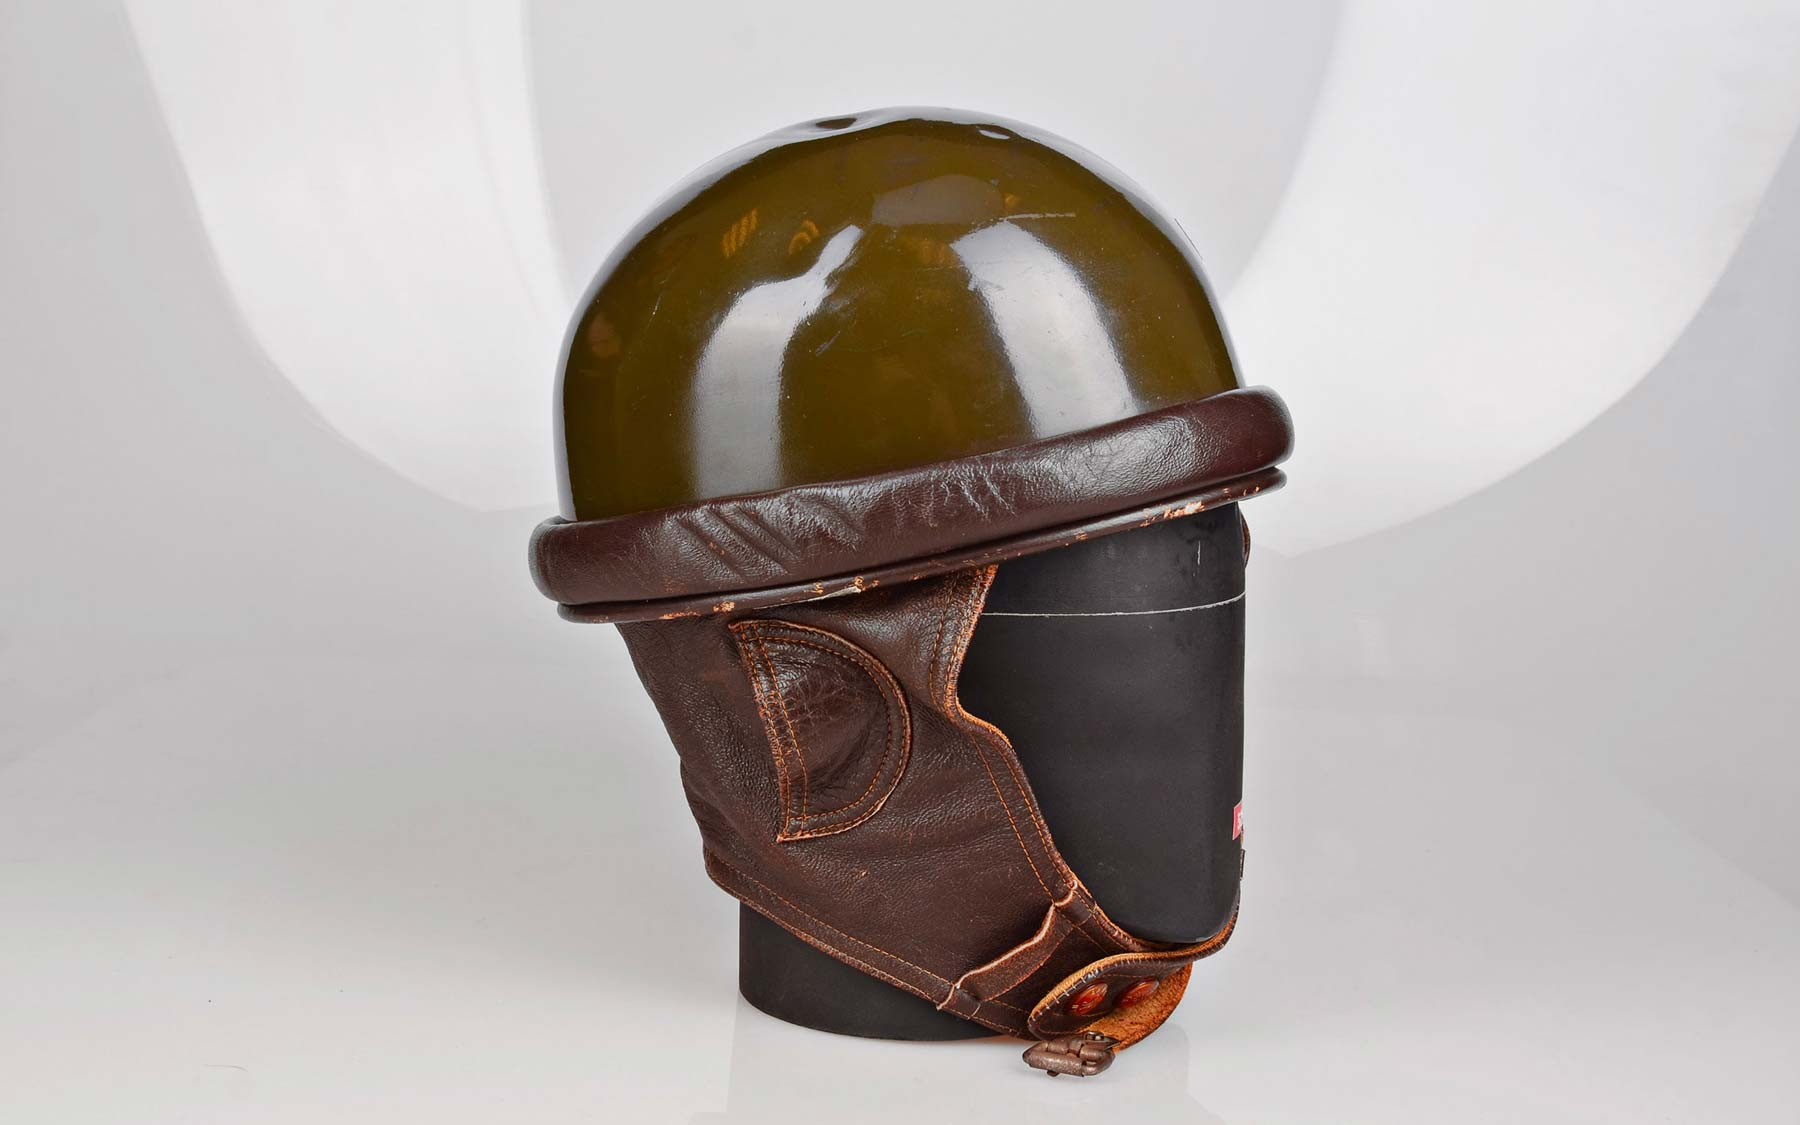 First thermoplastic helmets